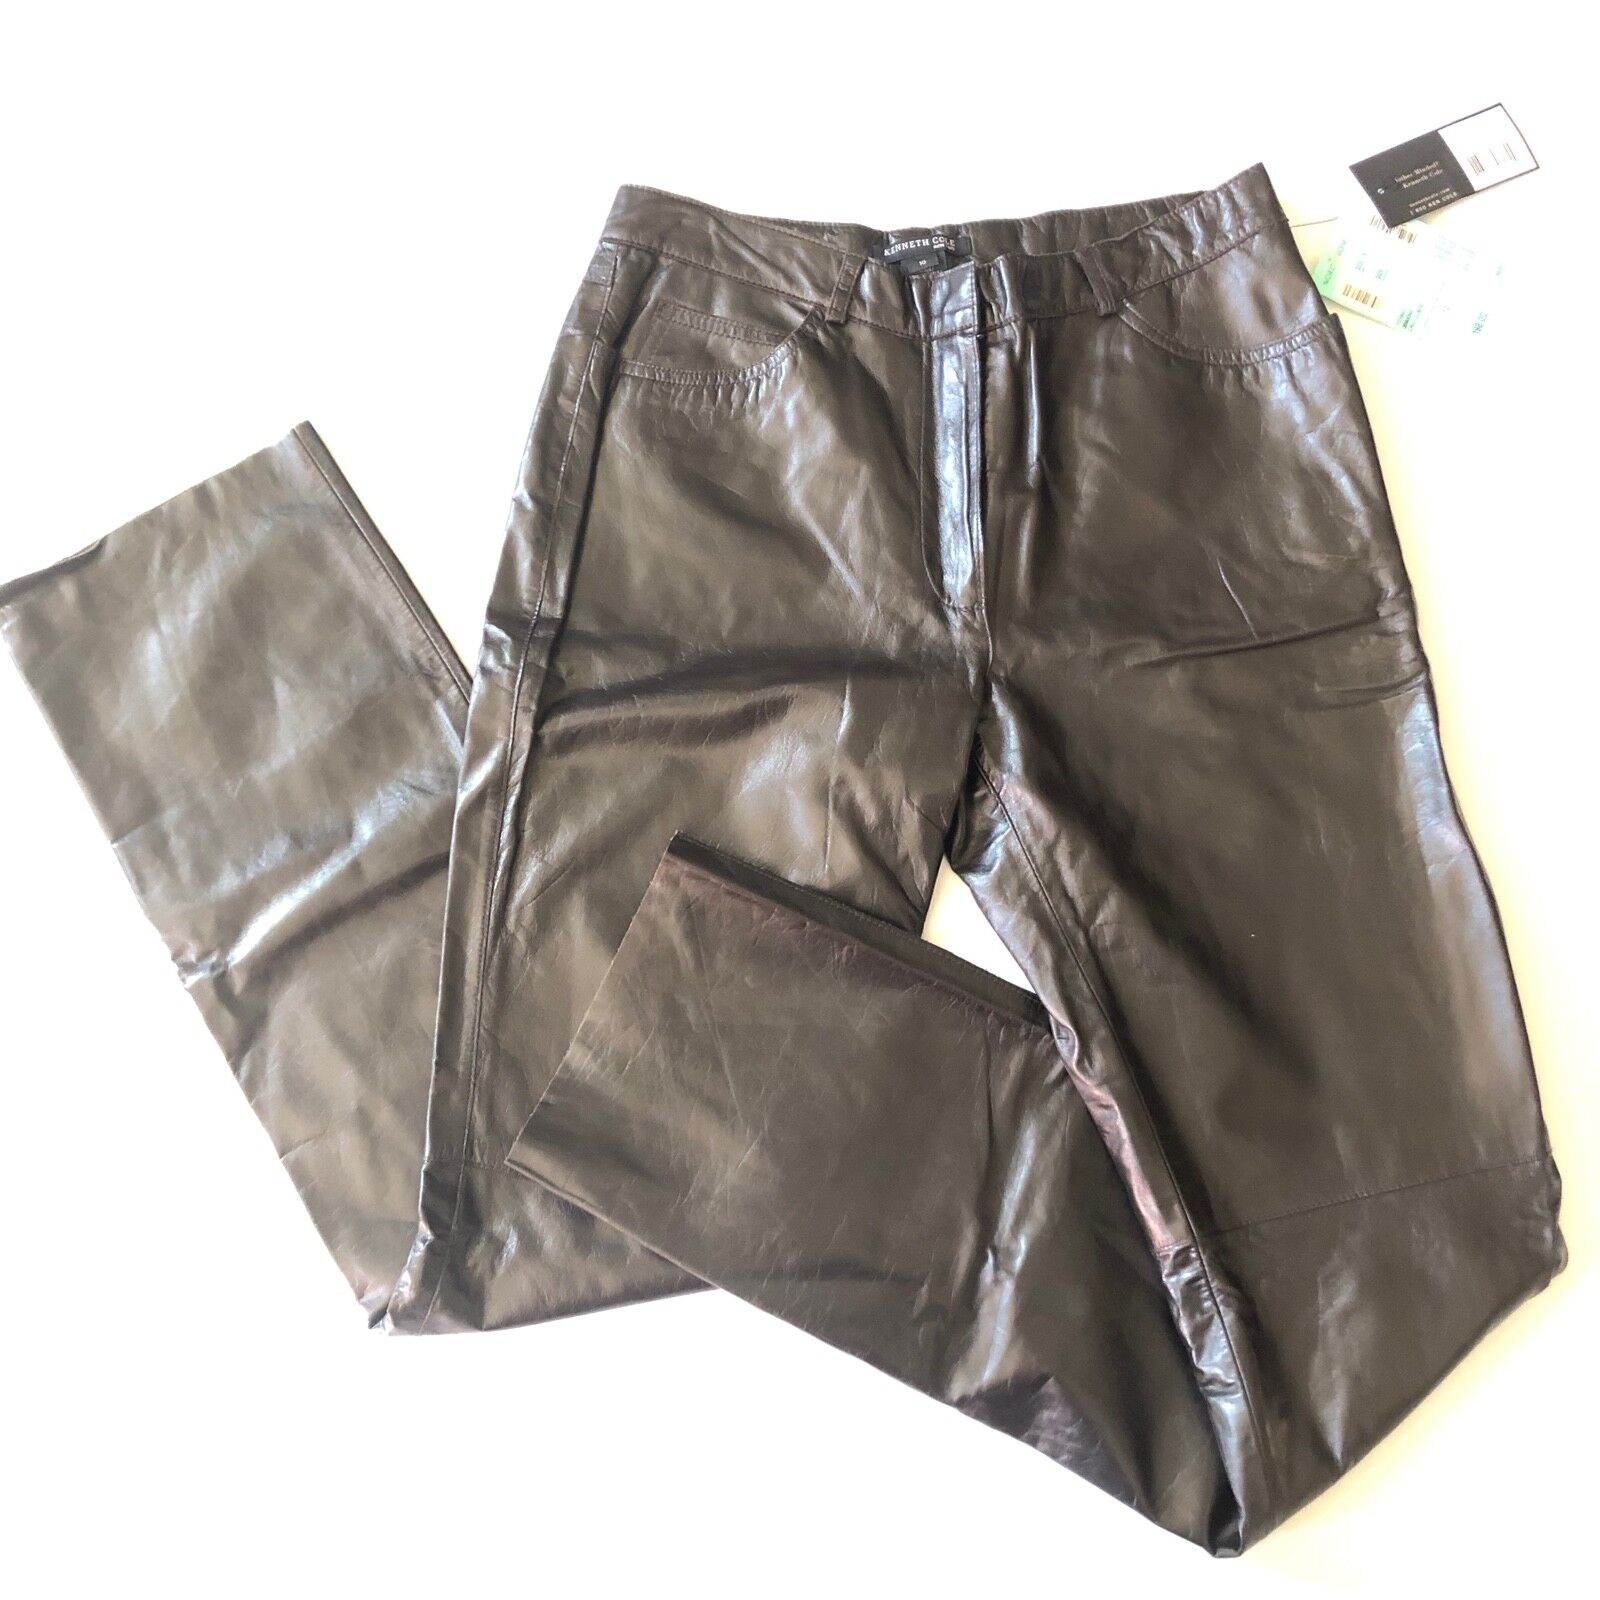 9cff7641831 Kenneth Cole NY Women's Straight Leg 100% Leather Pants Size 10 Chocolate  Brown